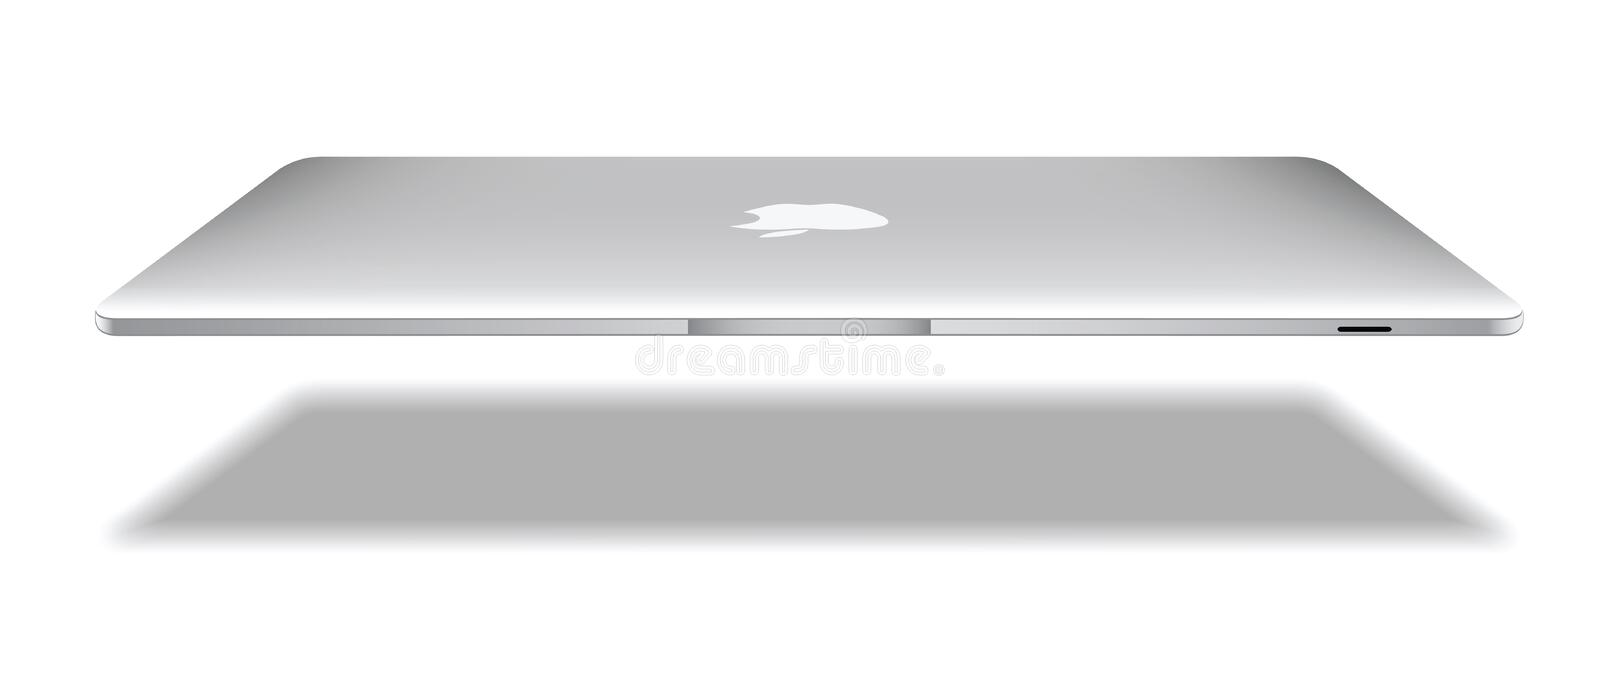 Apple macbook Luft